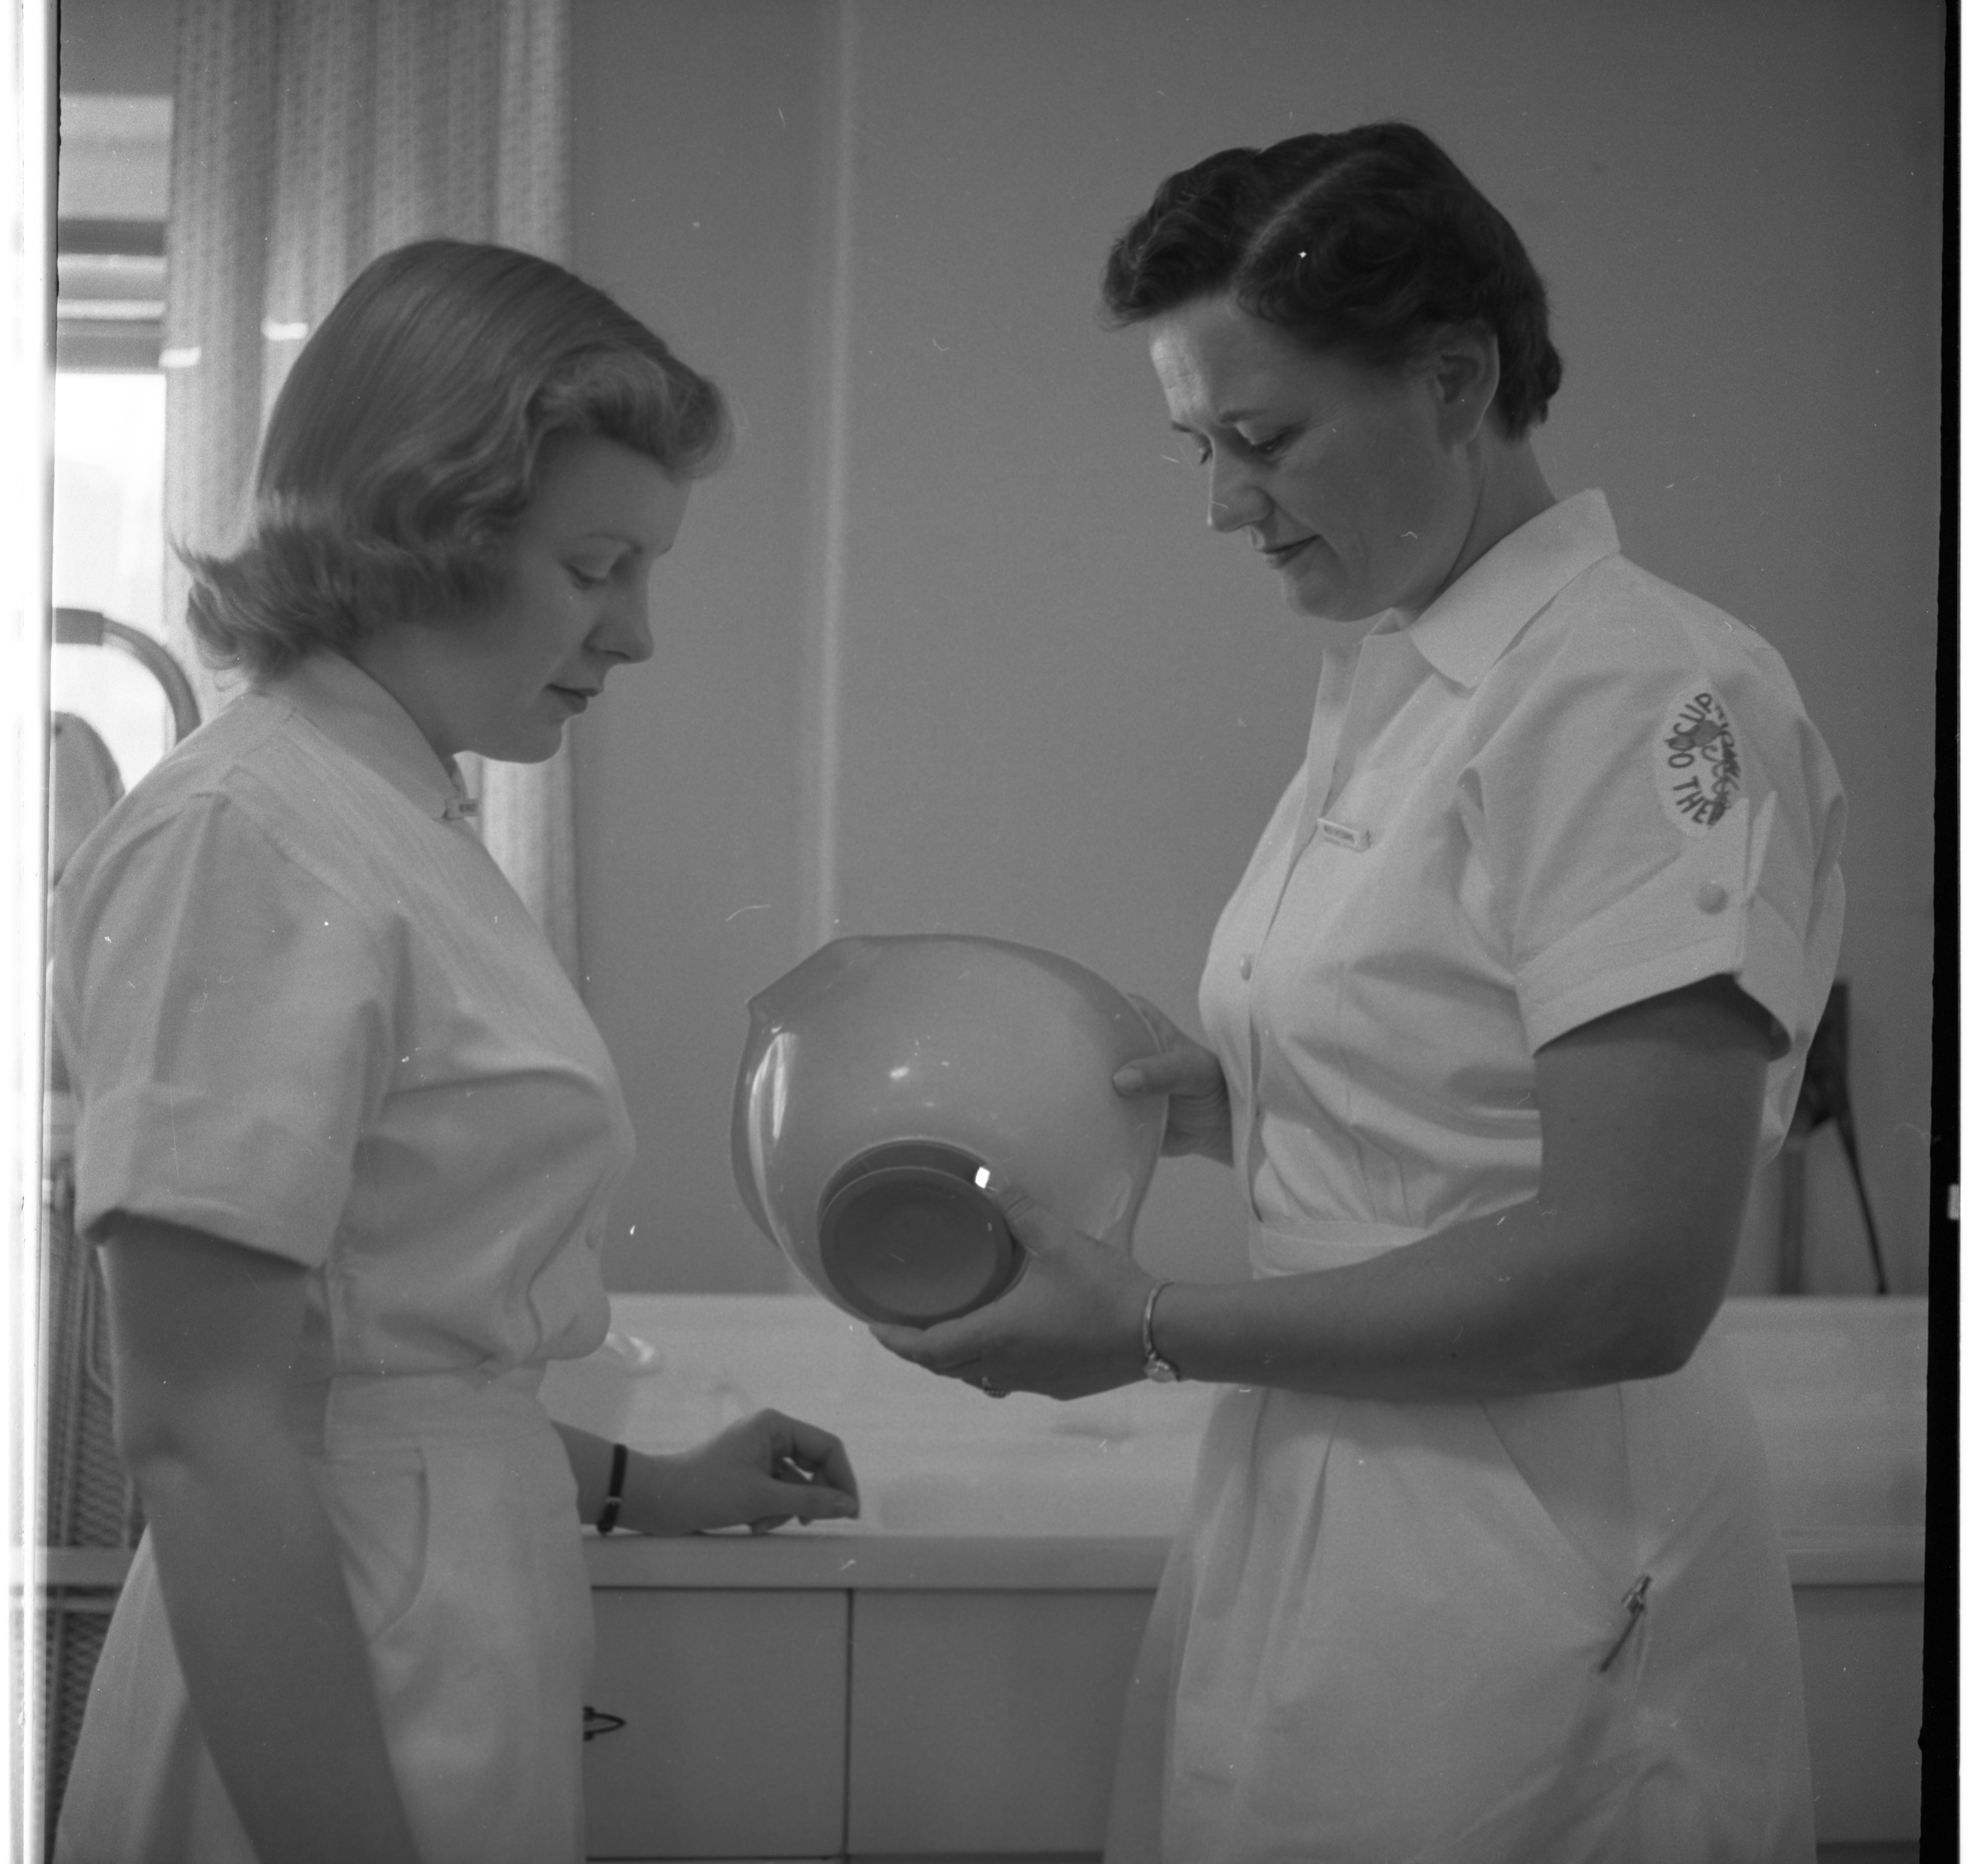 Adaptive Cooking Equipment for Handicapped Homemakers at University Hospital, September 1958 image